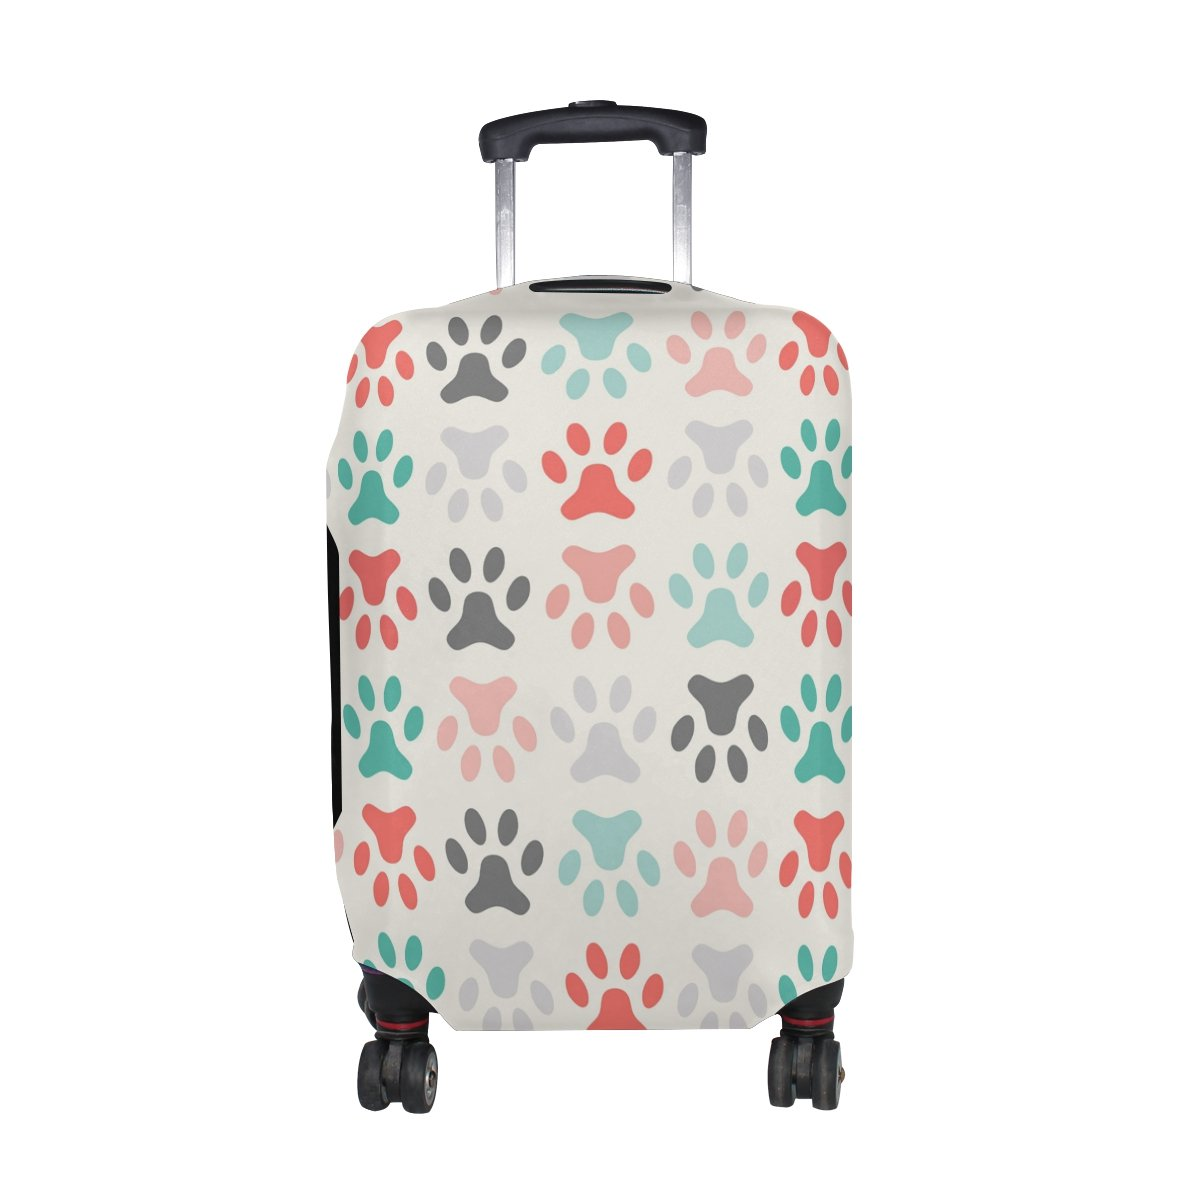 LAVOVO Cat Or Dog Paws Footprints Luggage Cover Suitcase Protector Carry On Covers